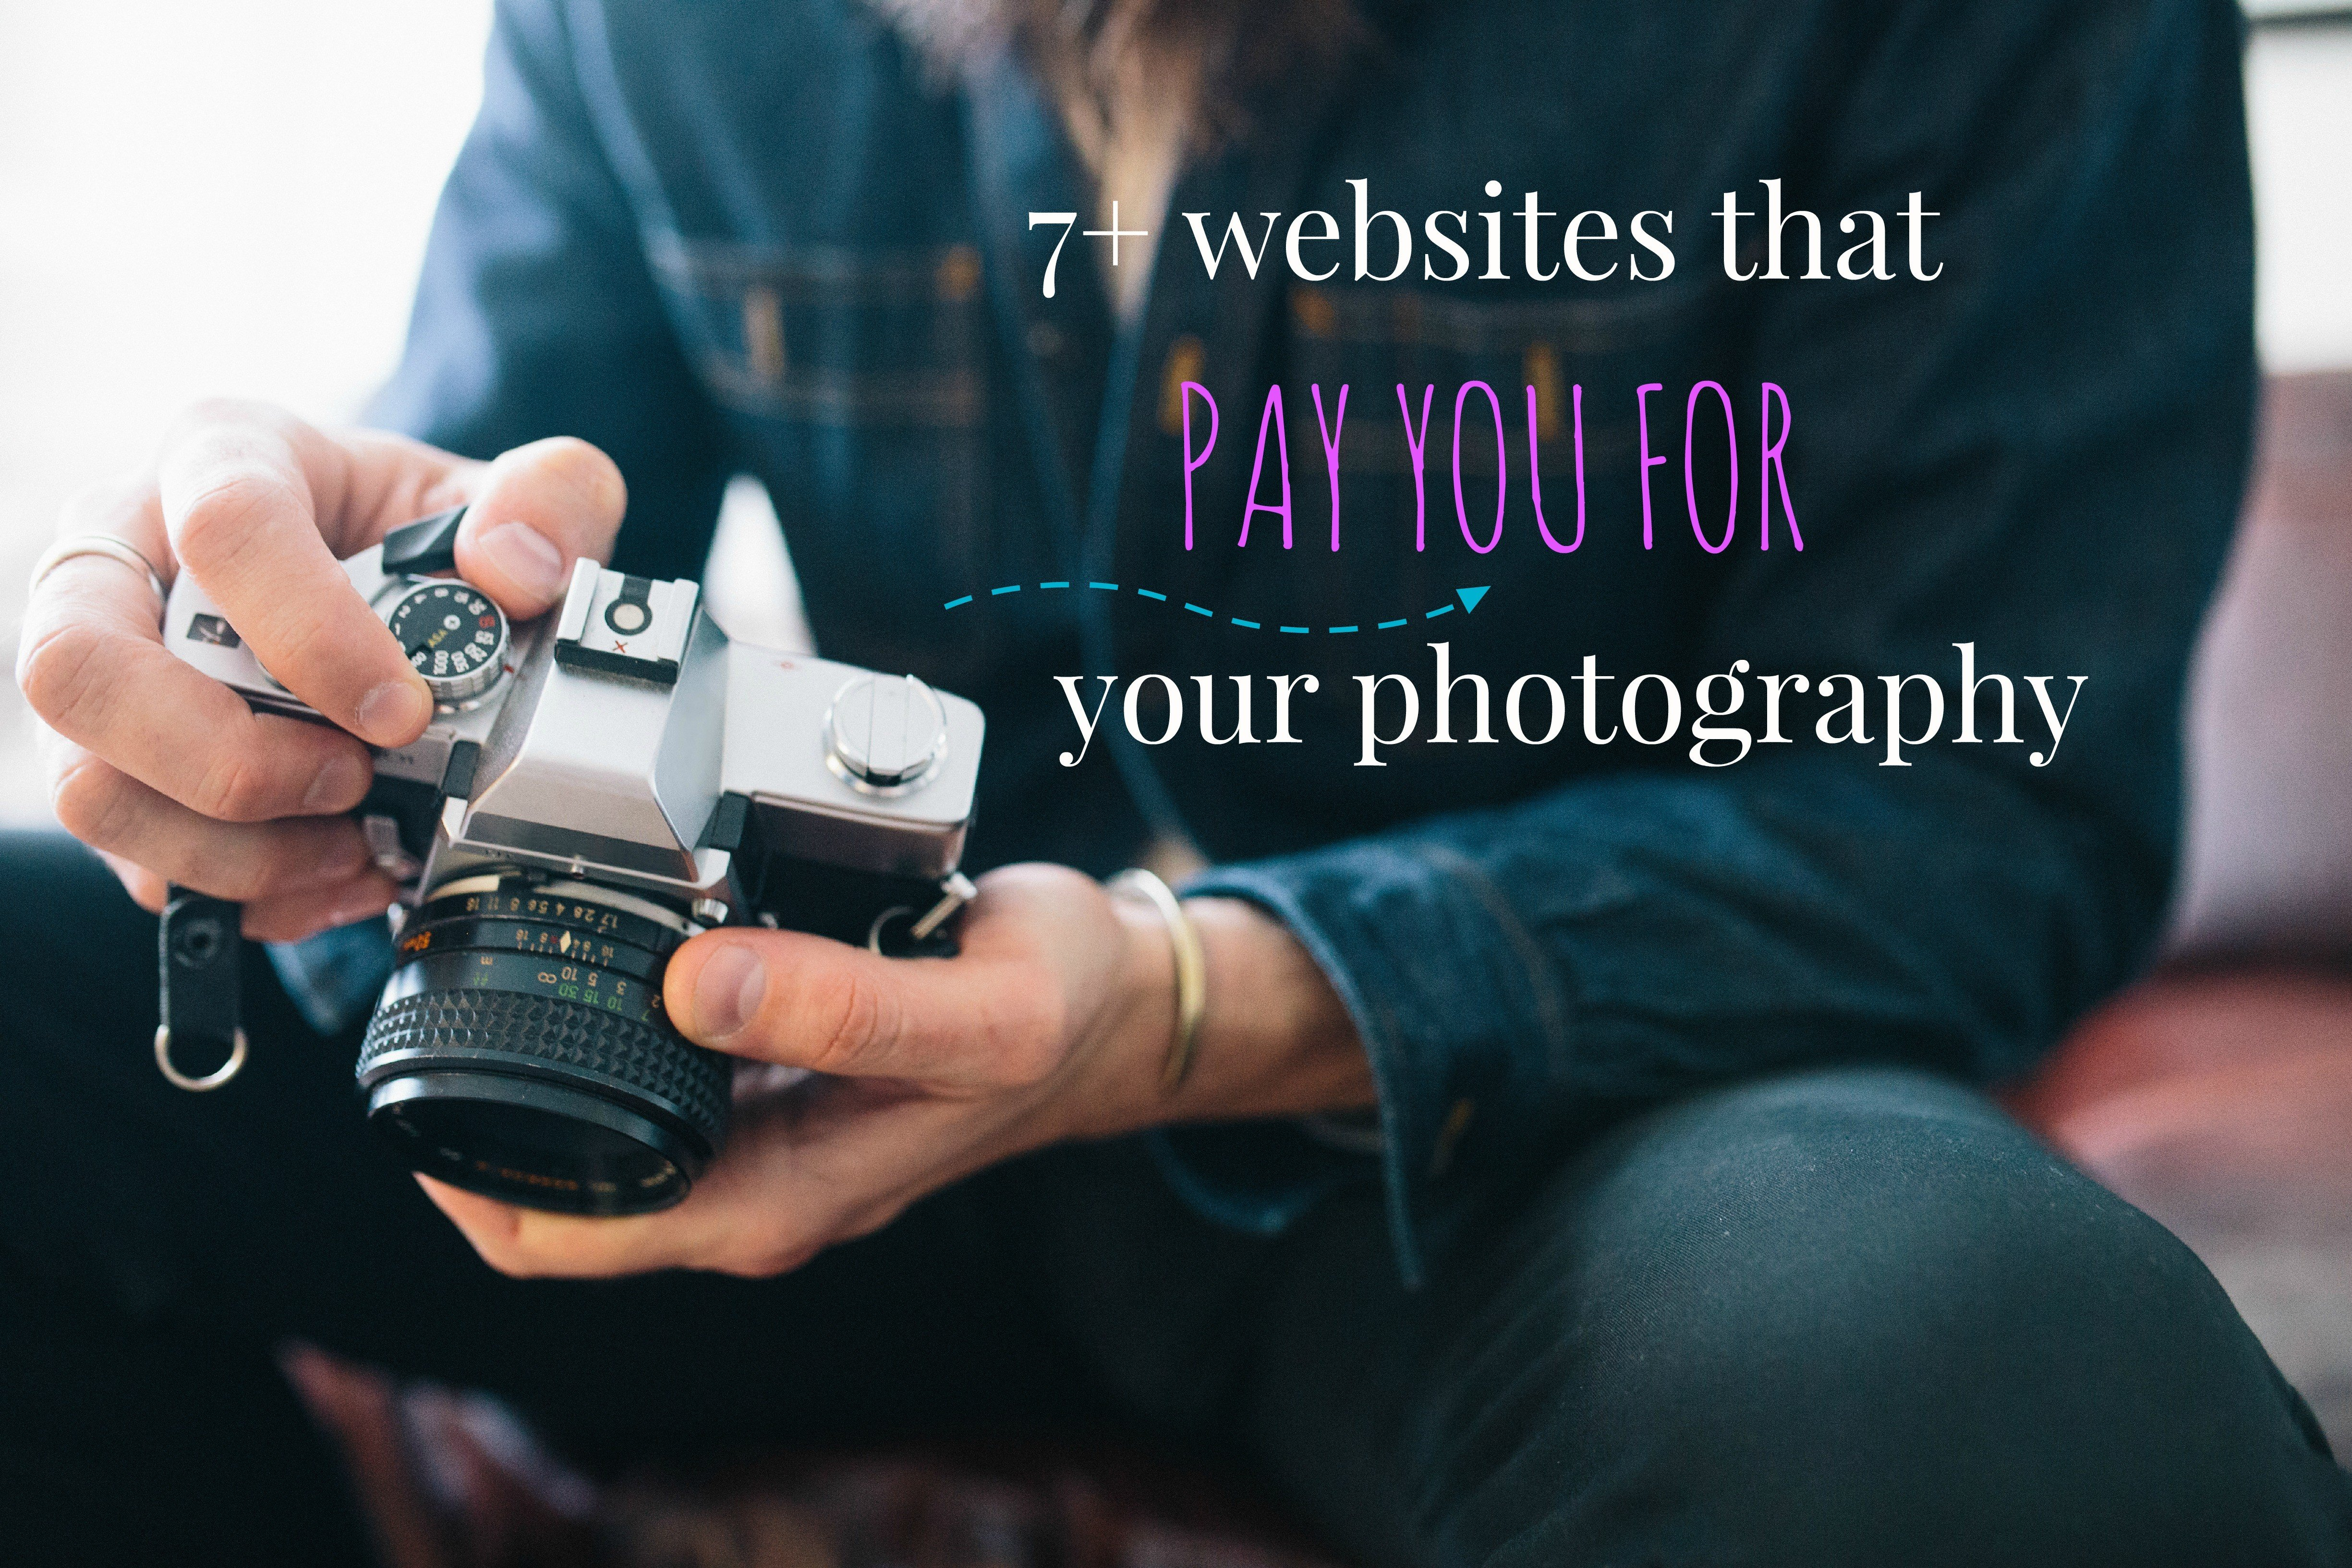 More than 7 websites that will pay you for your photography. Get paid to photograph.